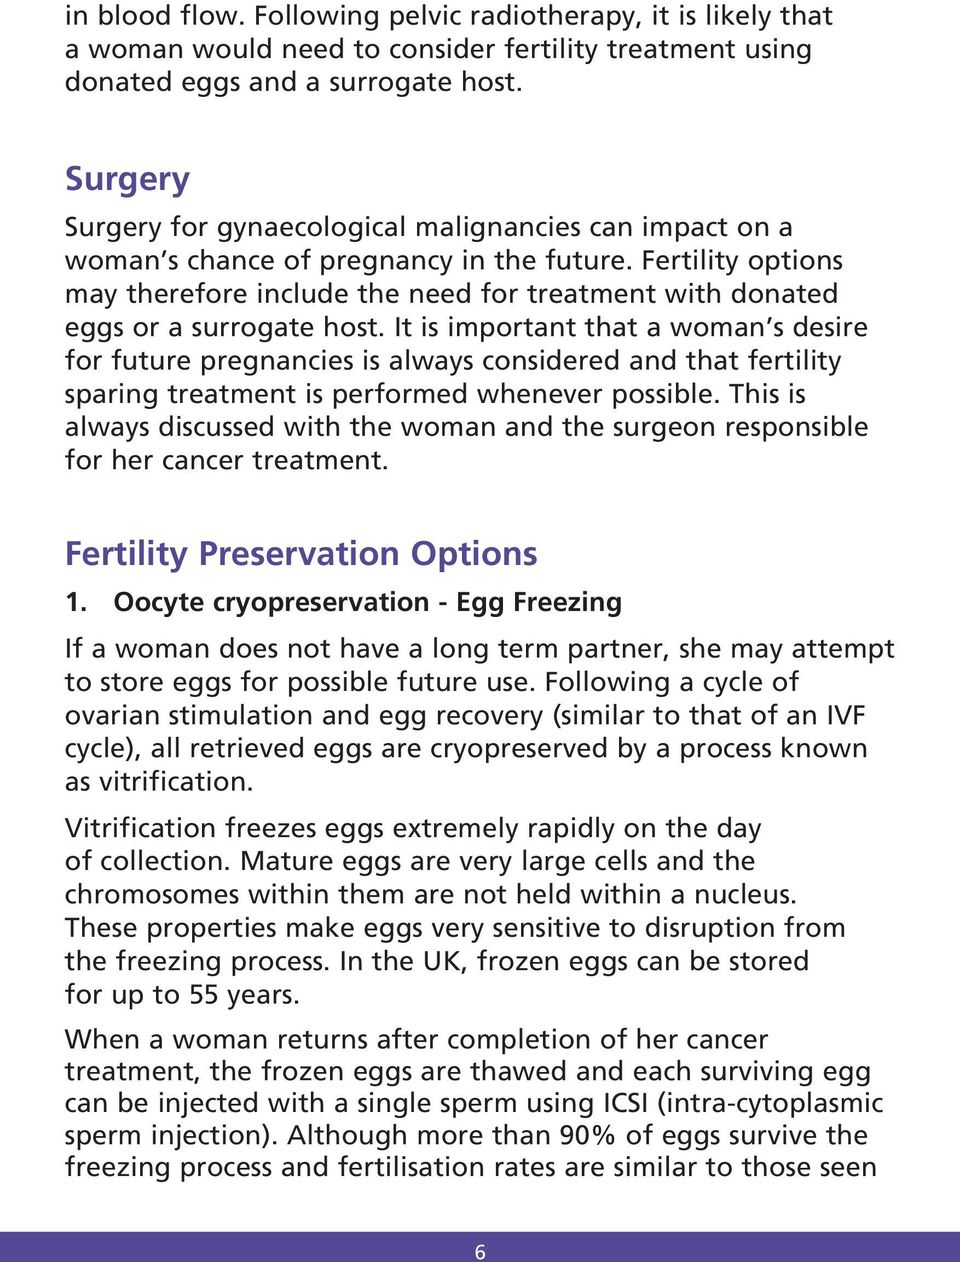 Fertility options may therefore include the need for treatment with donated eggs or a surrogate host.